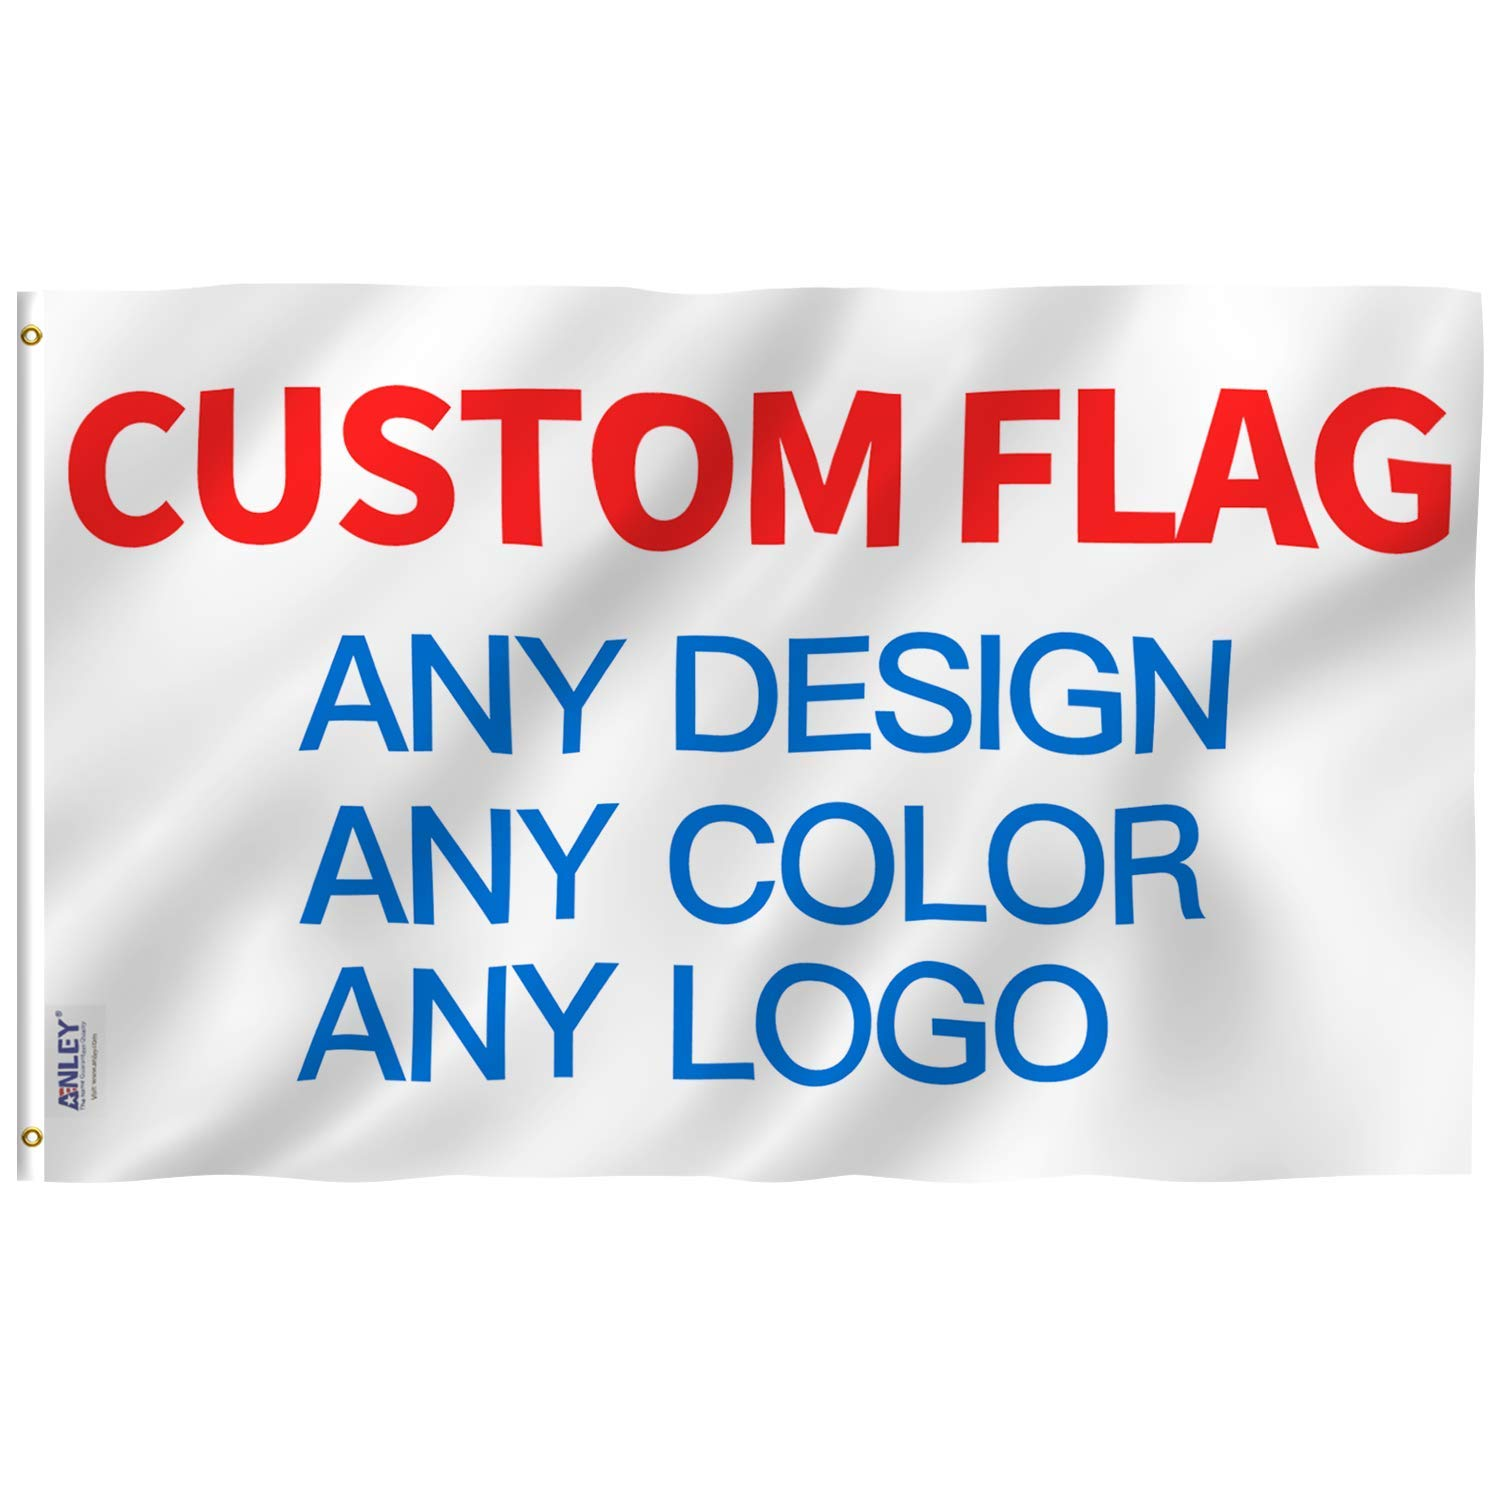 Anley Double Sided Custom Flag 3x5 Ft for Ourdoors - Print Your Own Logo/Design/Words - Vivid Color, Canvas Header and Double Stitched - Customized Two Side Flags Banners with Brass Grommets 3 X 5 Ft